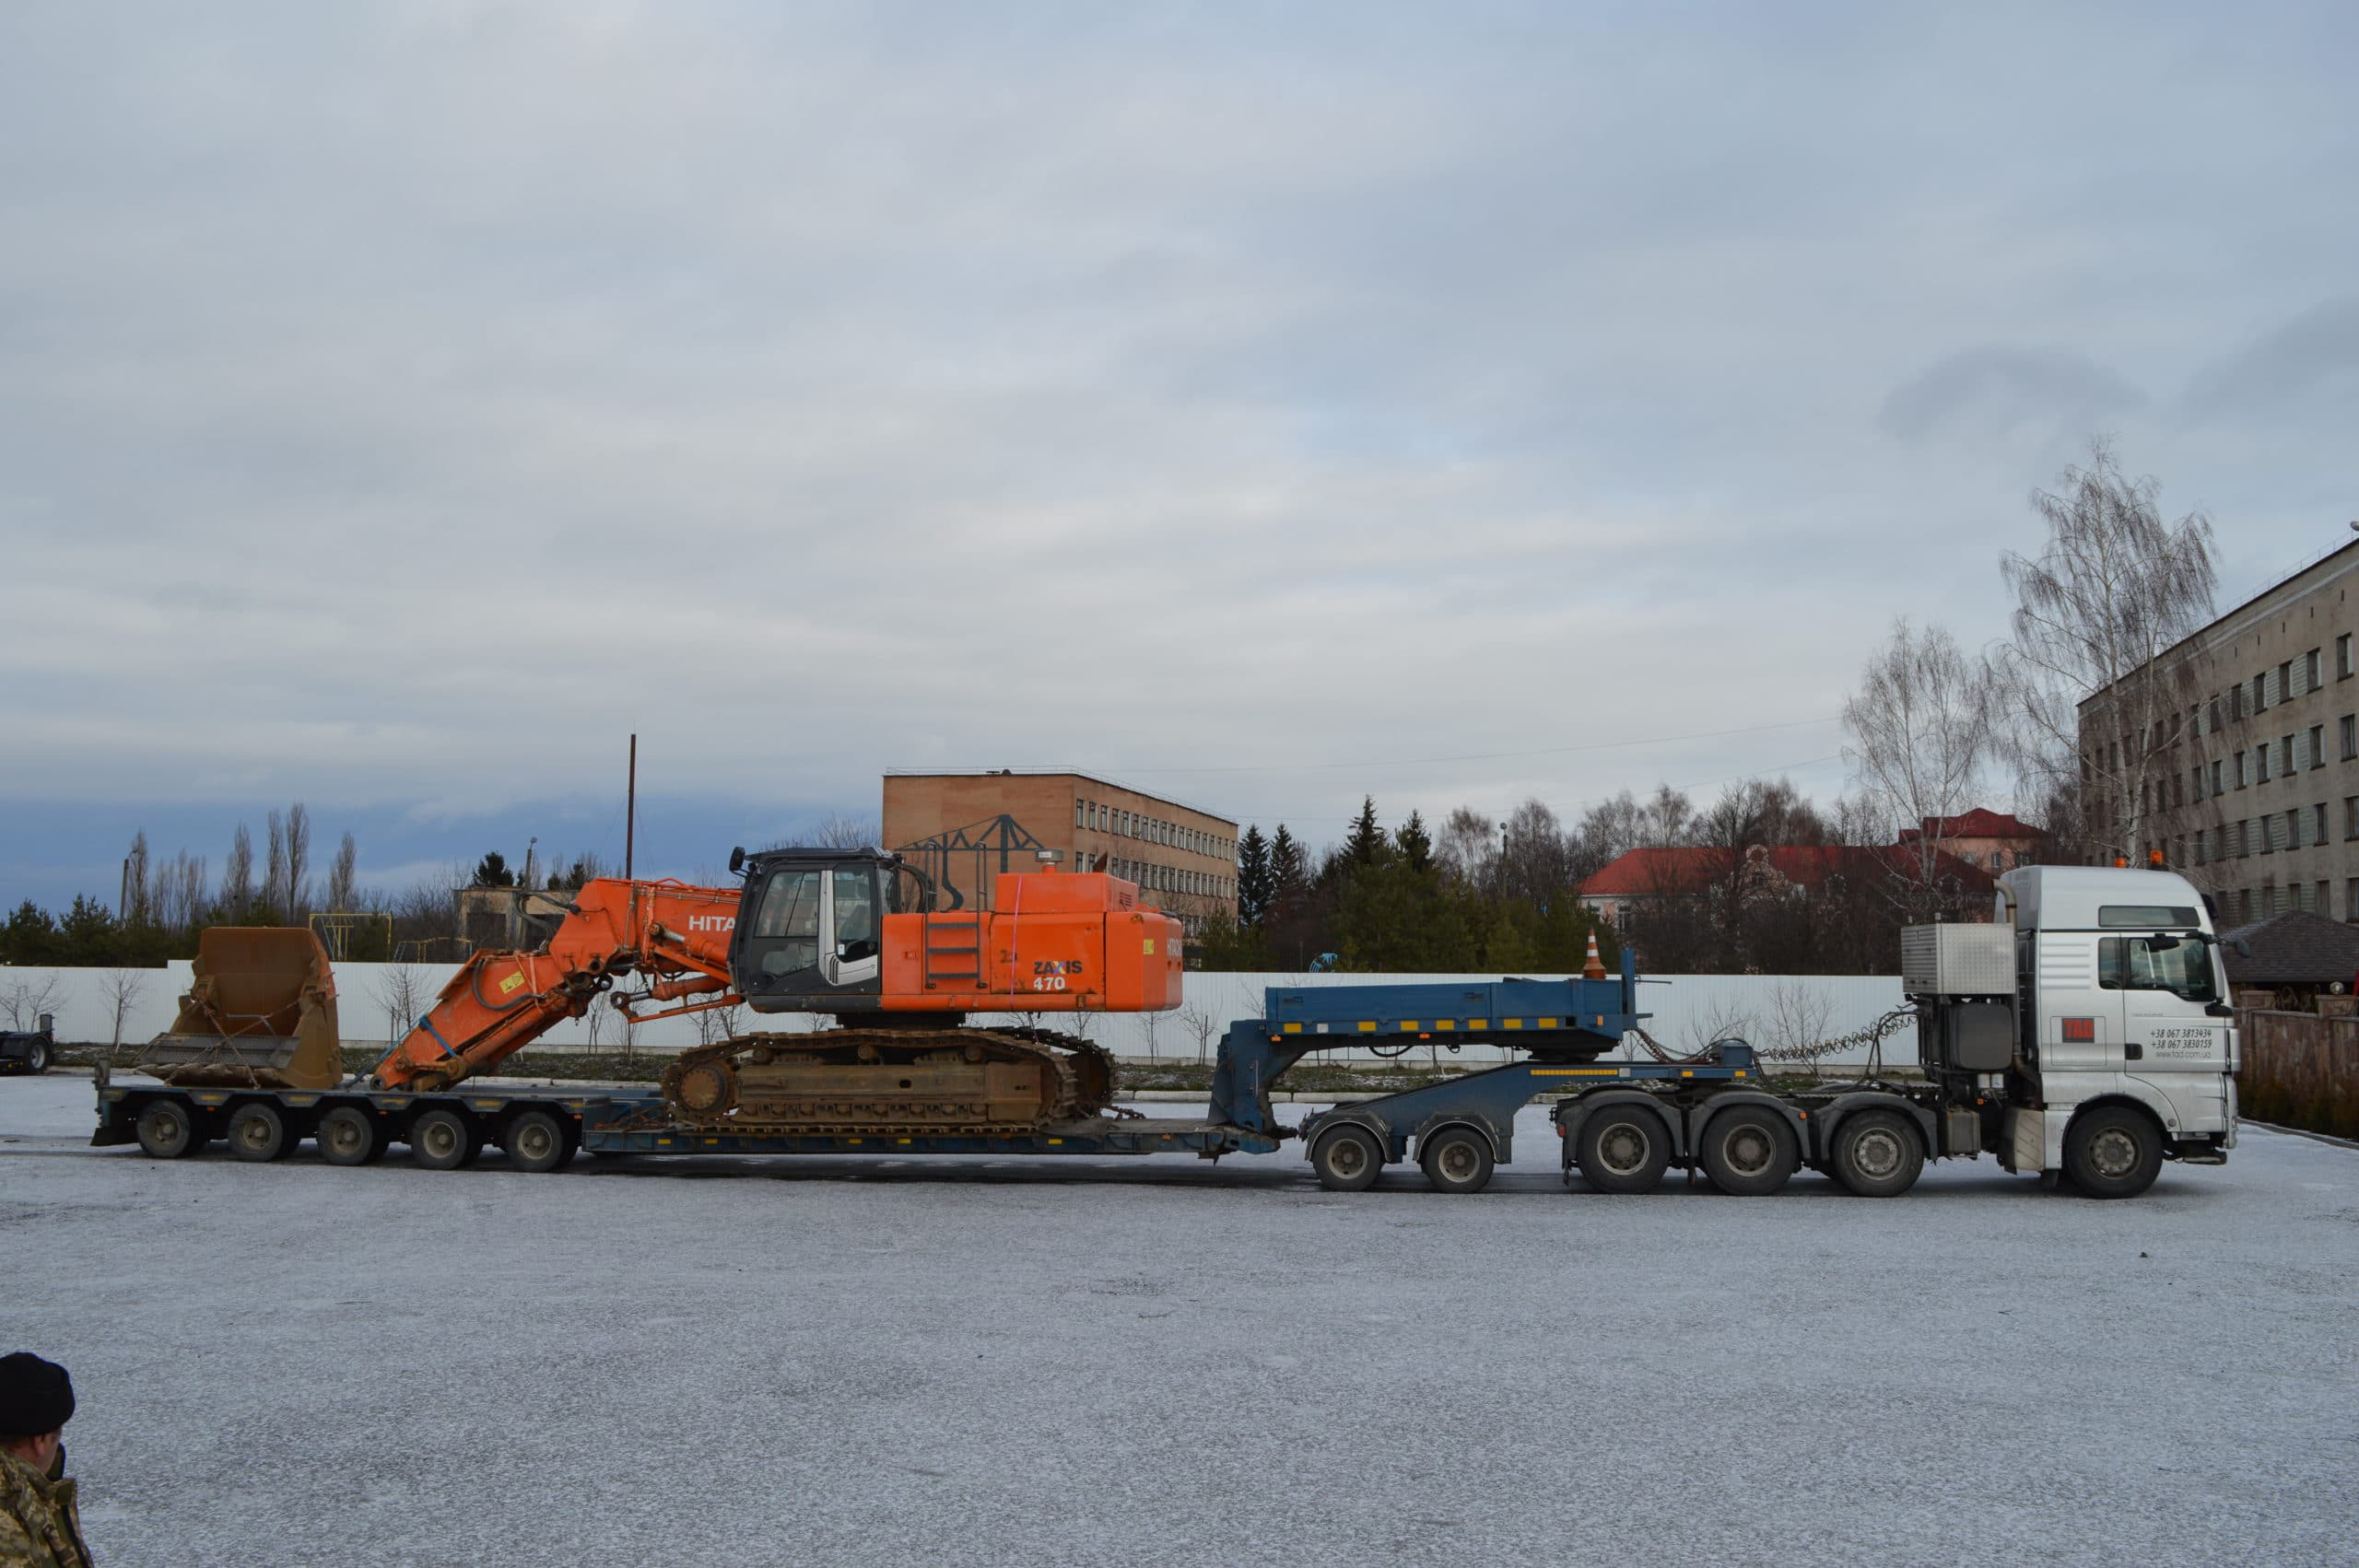 Transportation of the Hitachi ZX470 excavator from Europe